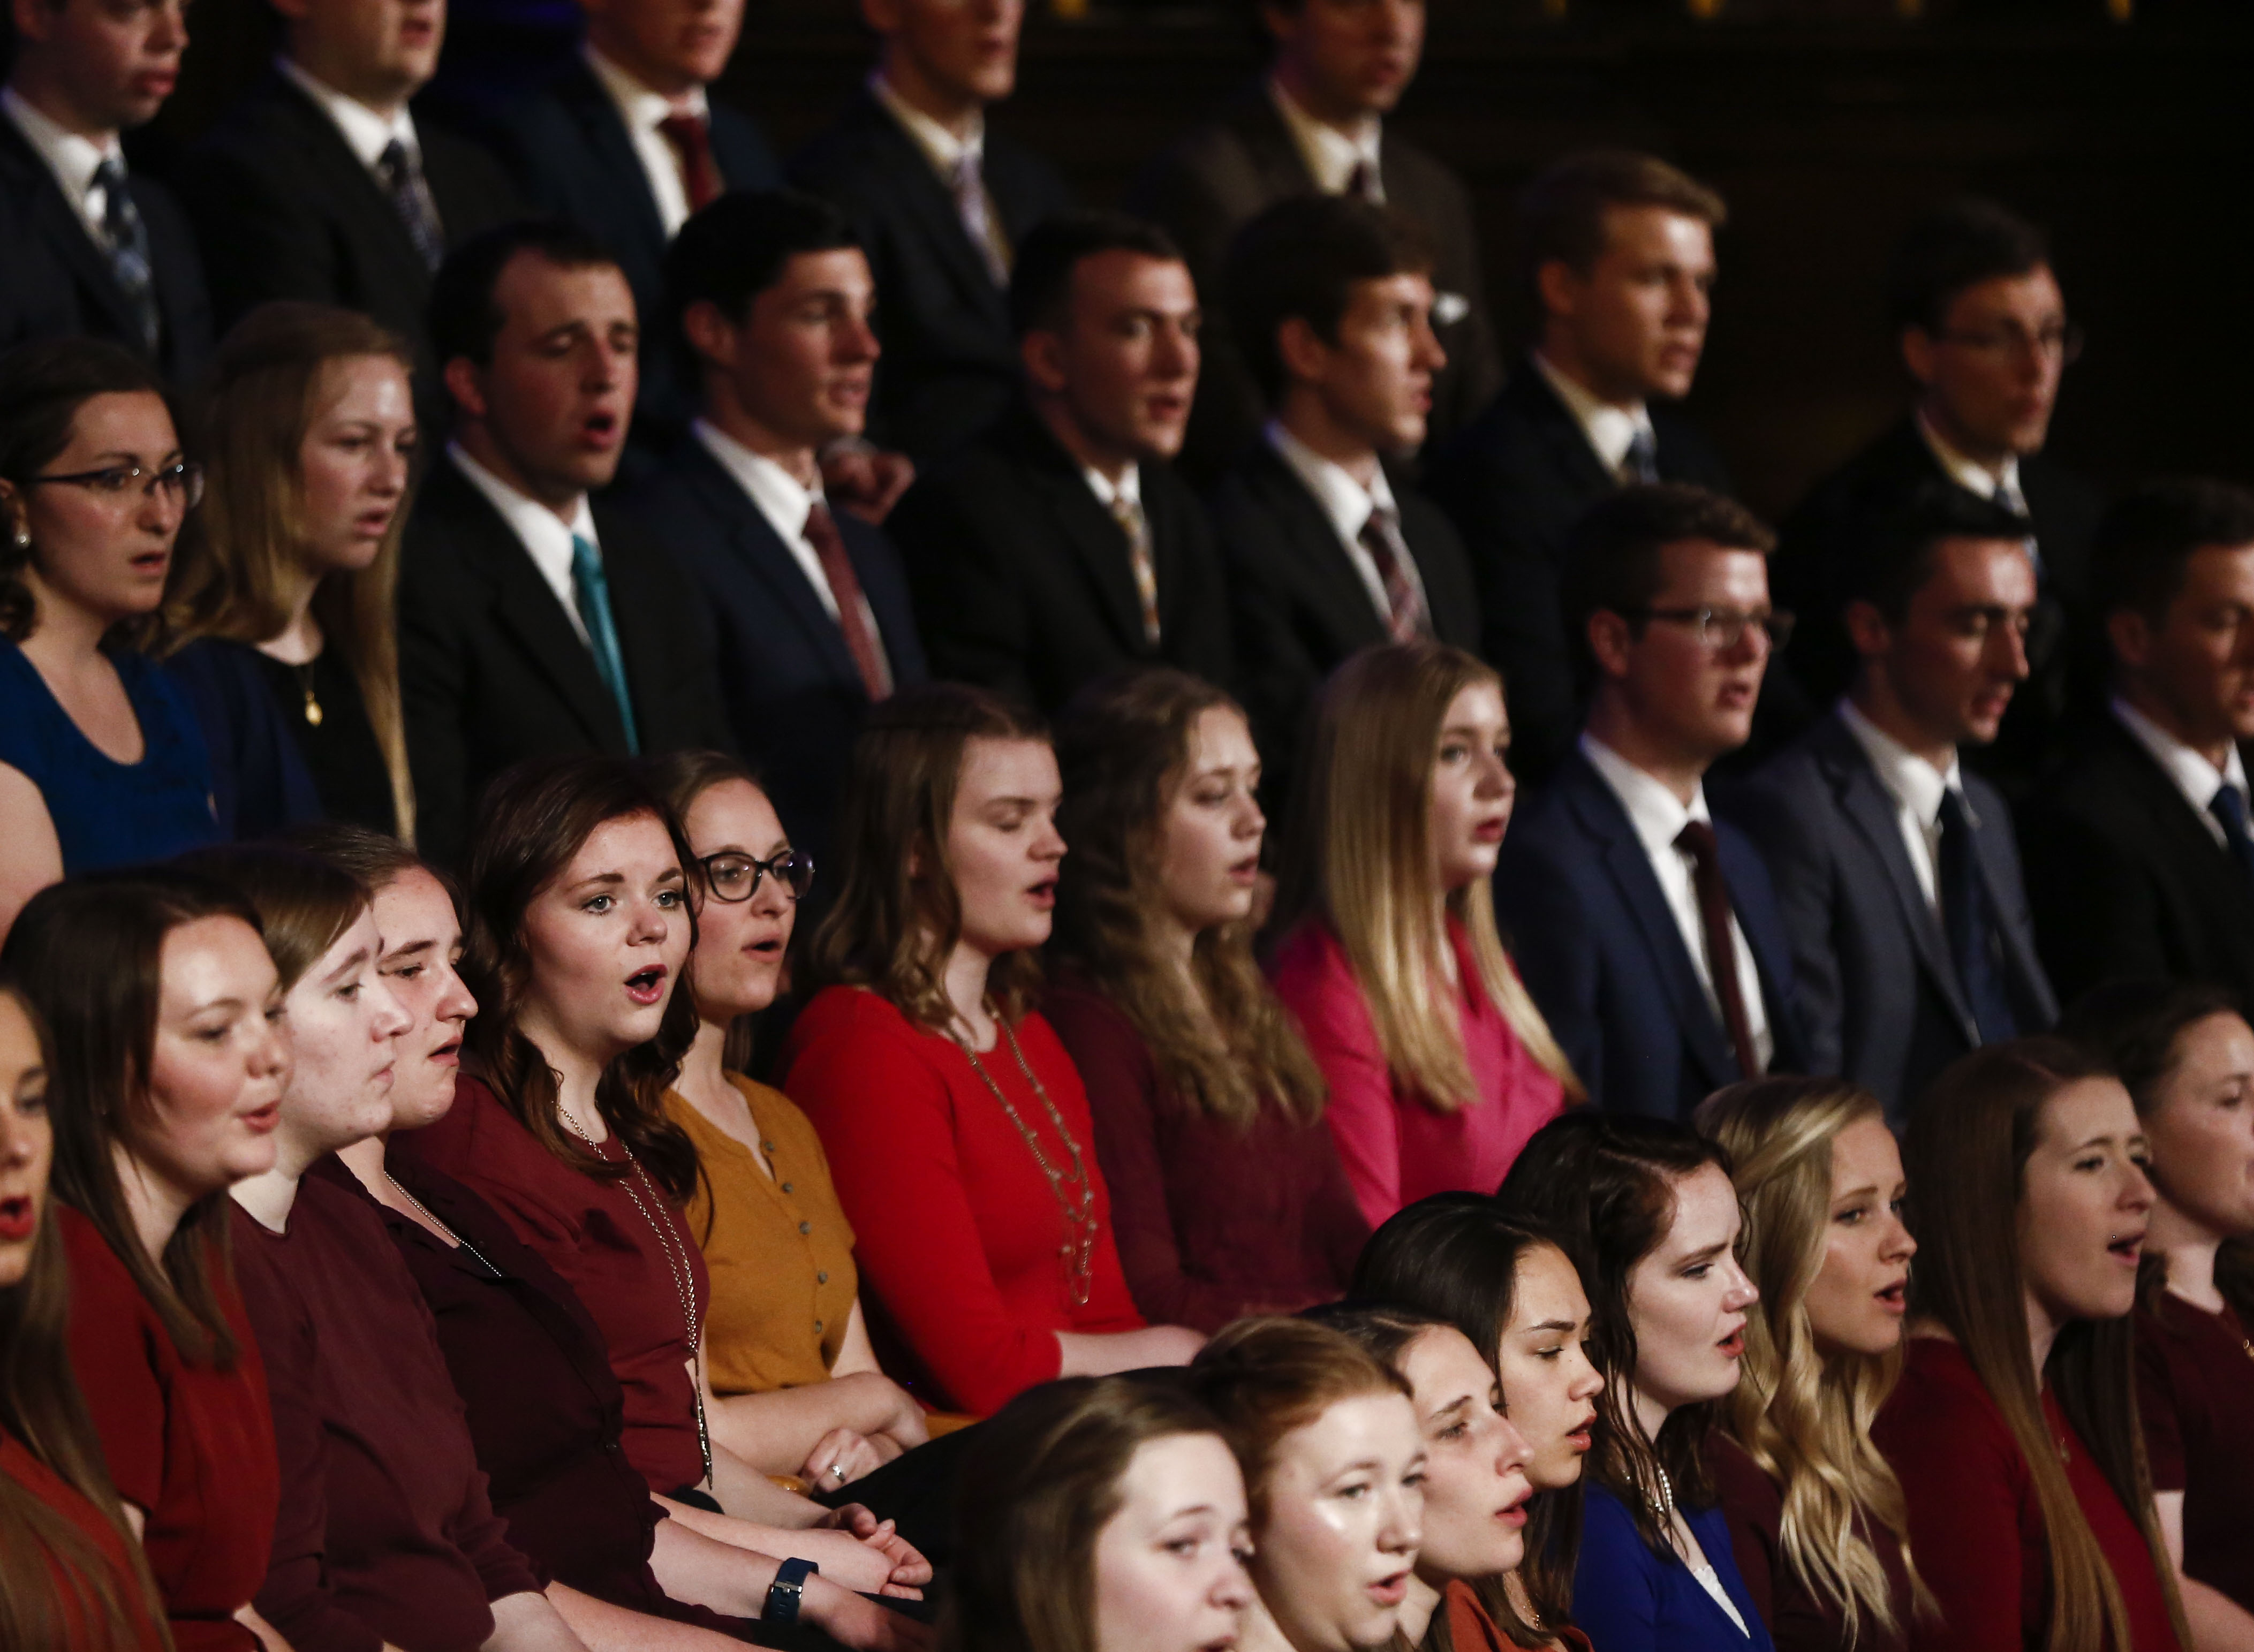 The choir preforms during the Worldwide Devotional for Young Adults at the Salt Lake Tabernacle in Salt Lake City on Sunday, May 5, 2019.